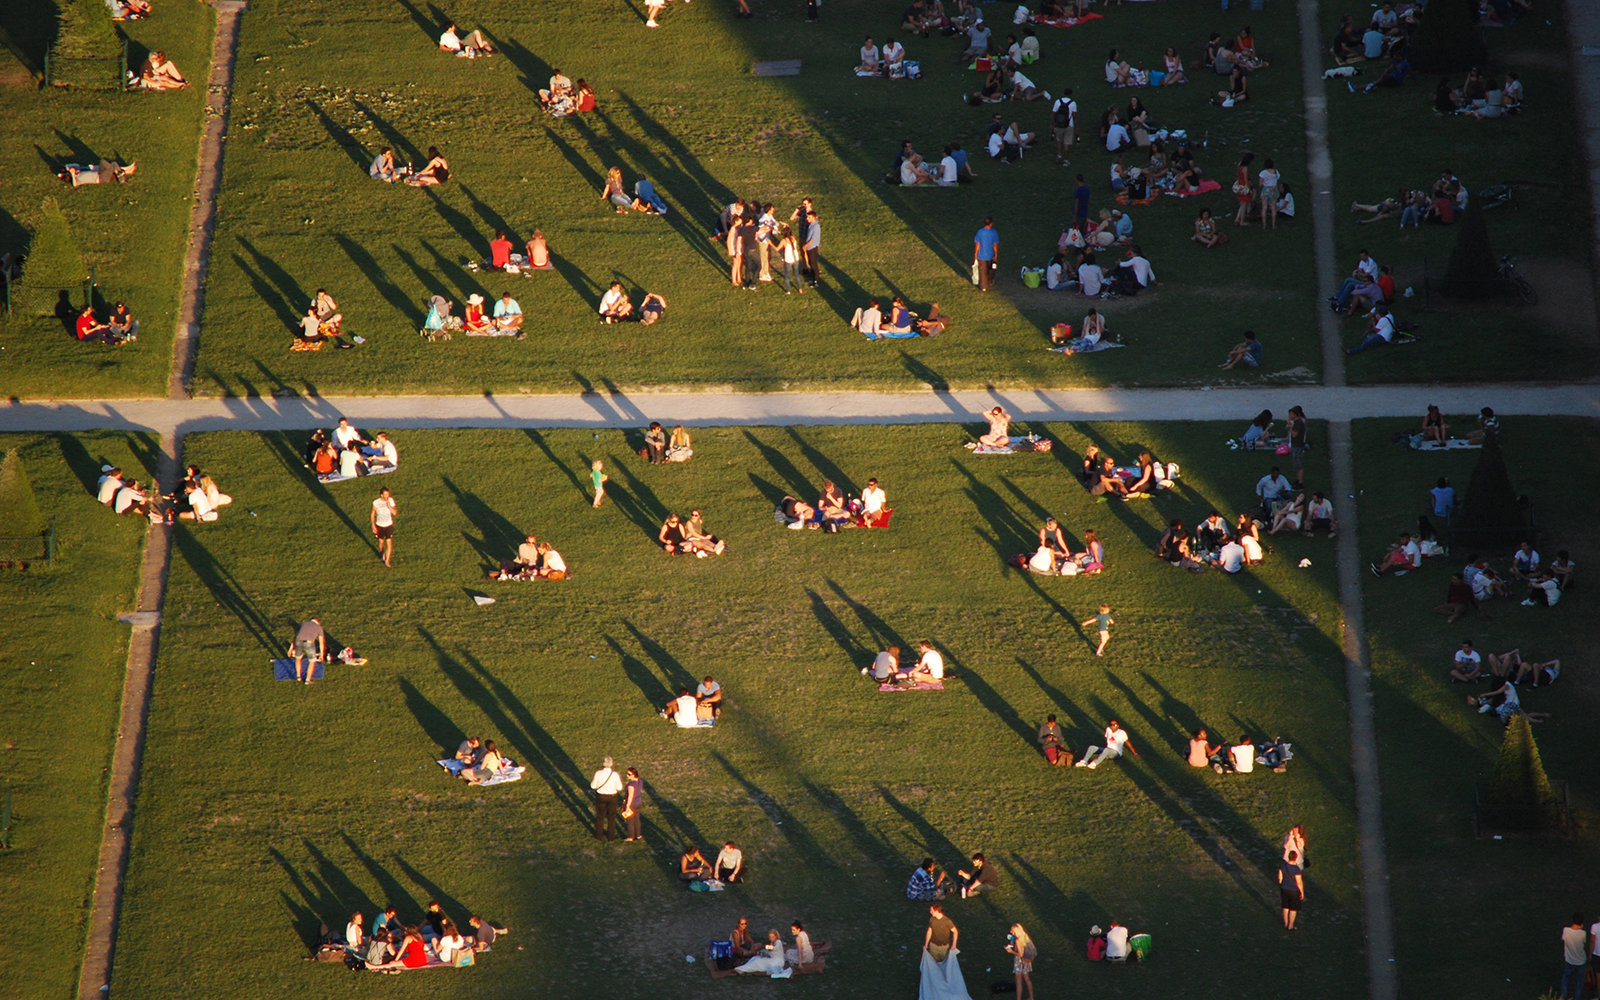 This photo was taken from the Eiffel Tower as the sun was setting, casting long shadows of the many people relaxing on the grass below.